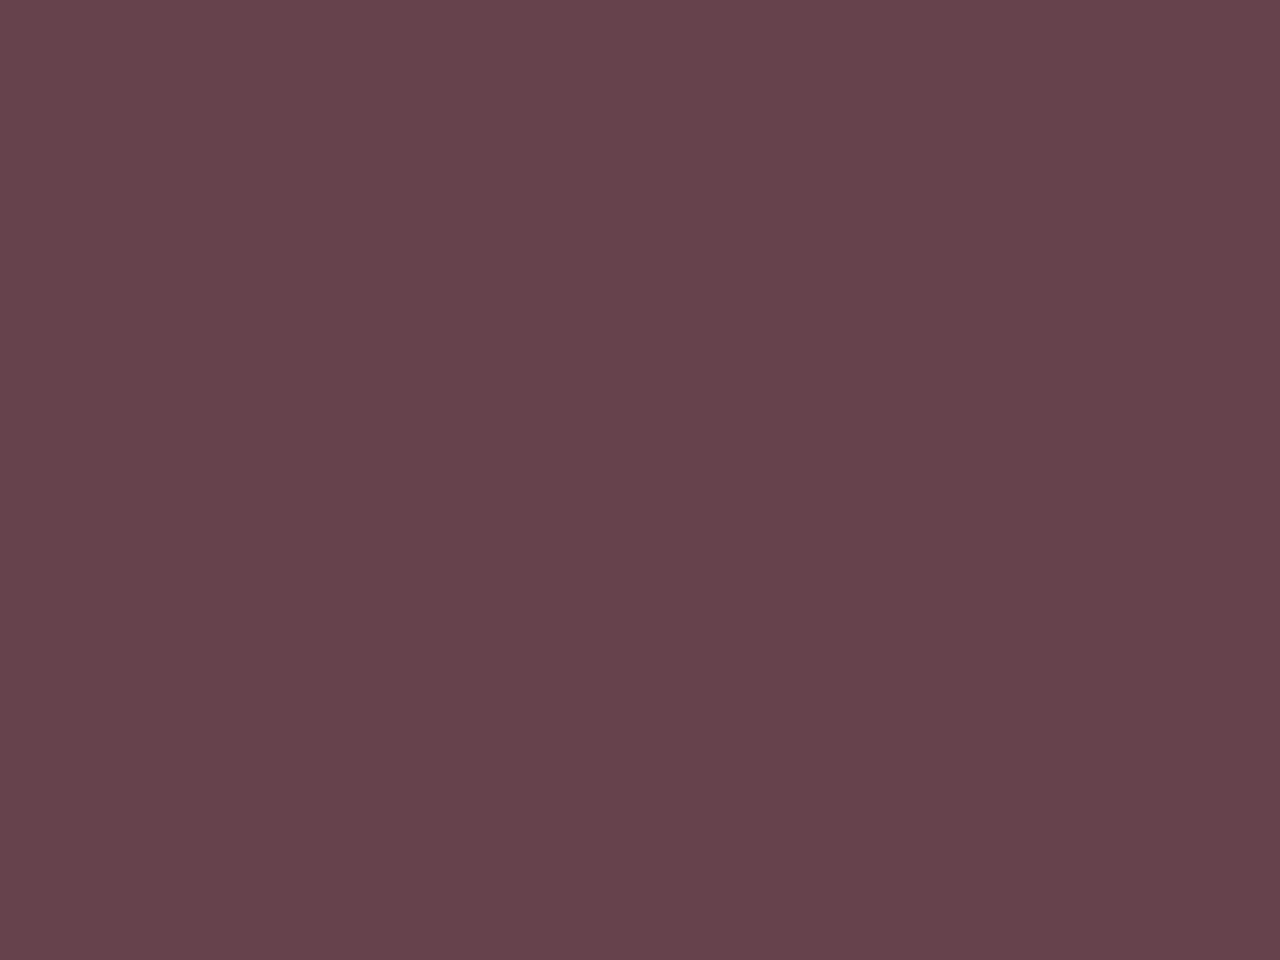 1280x960 Deep Tuscan Red Solid Color Background